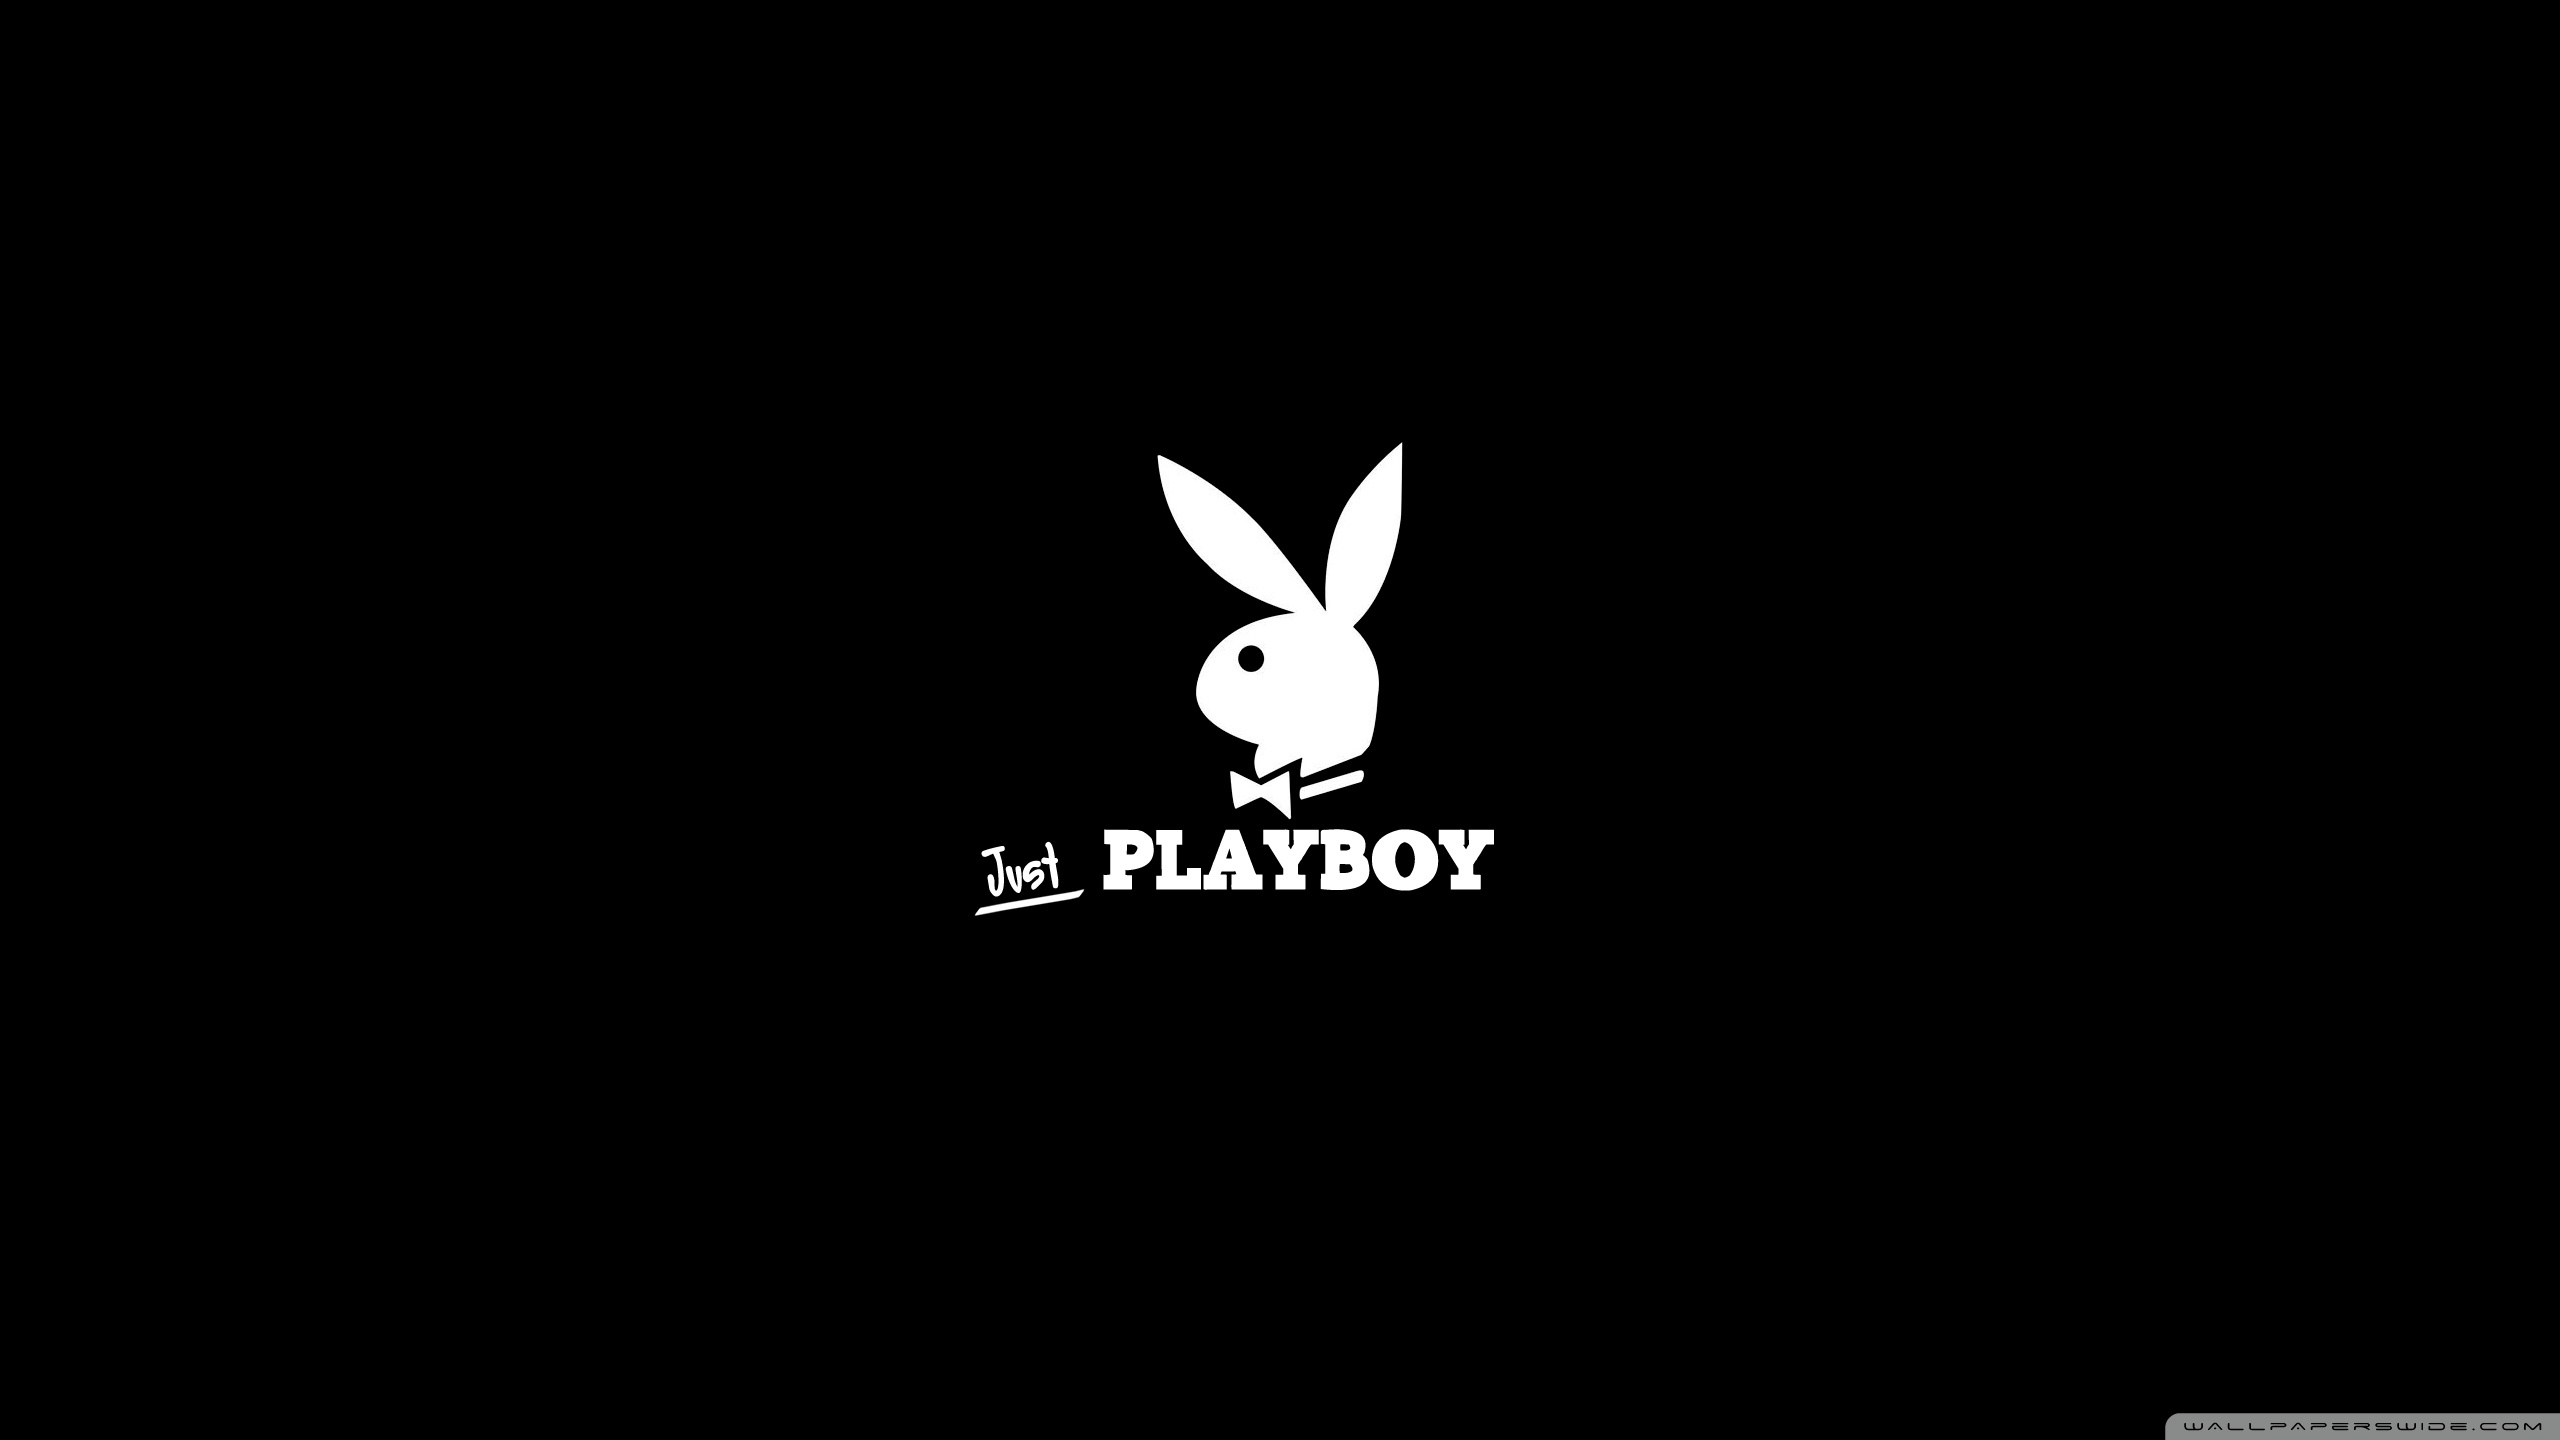 Playboy HD Wallpaper Download